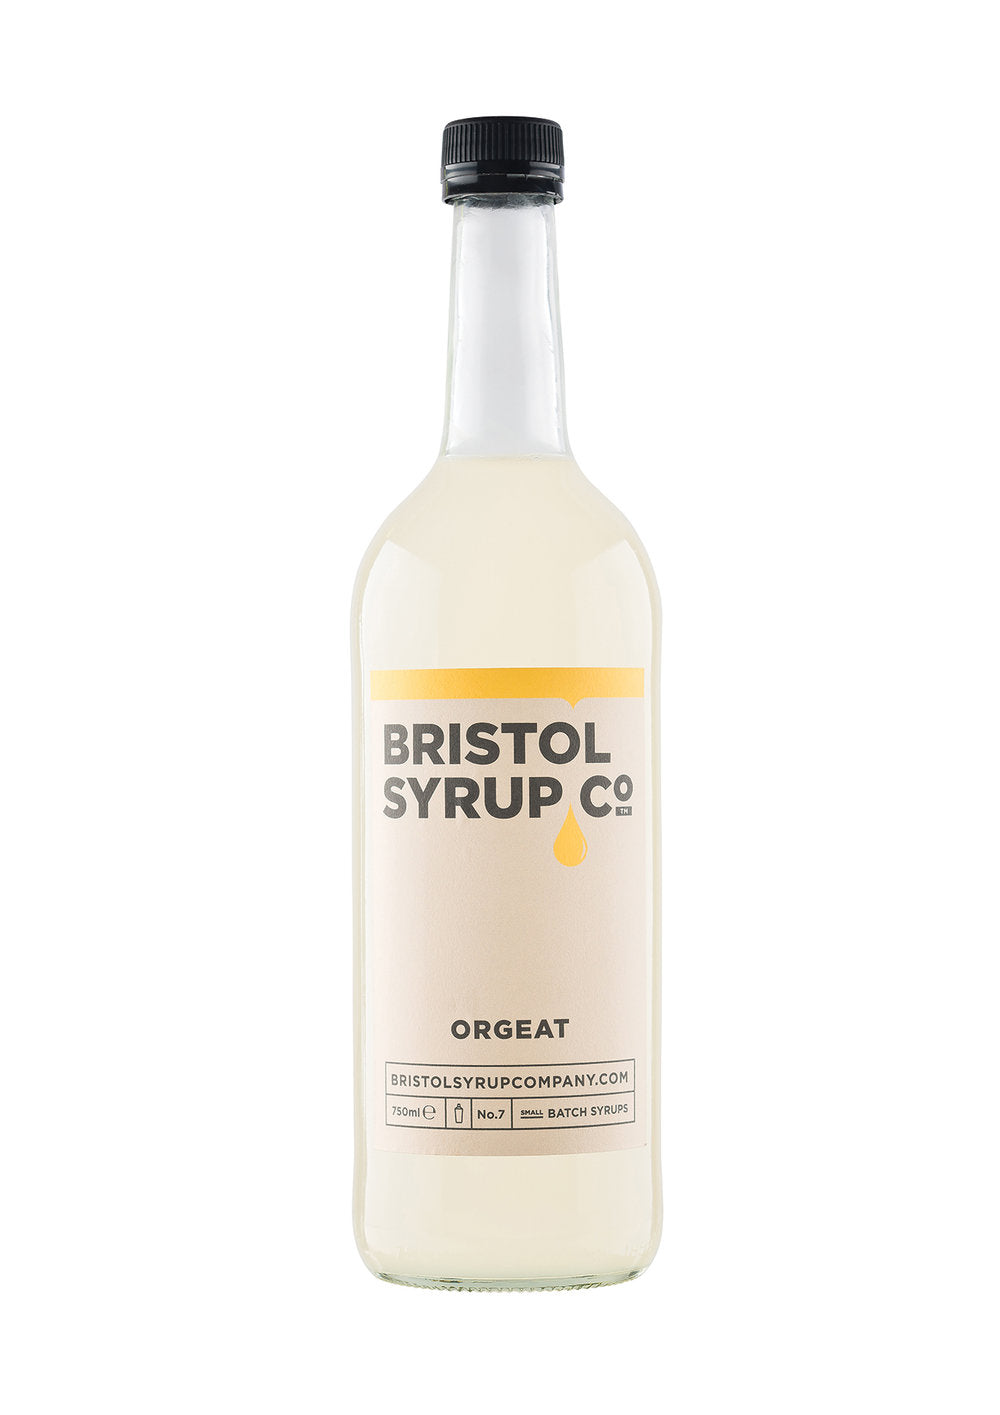 BRISTOL SYRUP CO. ORGEAT SYRUP 750ML - Vino Wines